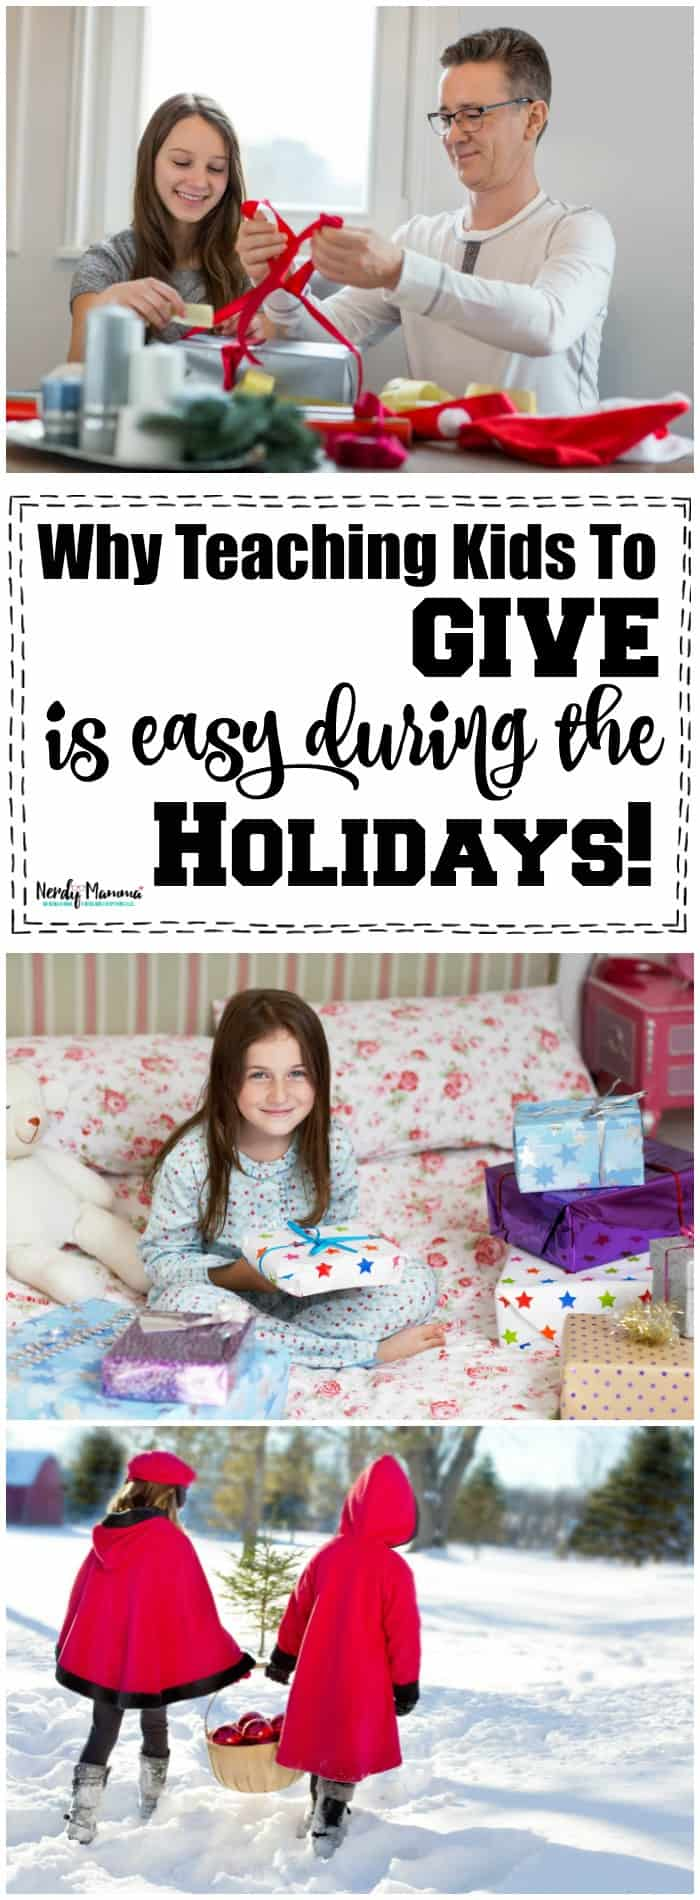 Why teaching kids to give is easy at the holidays